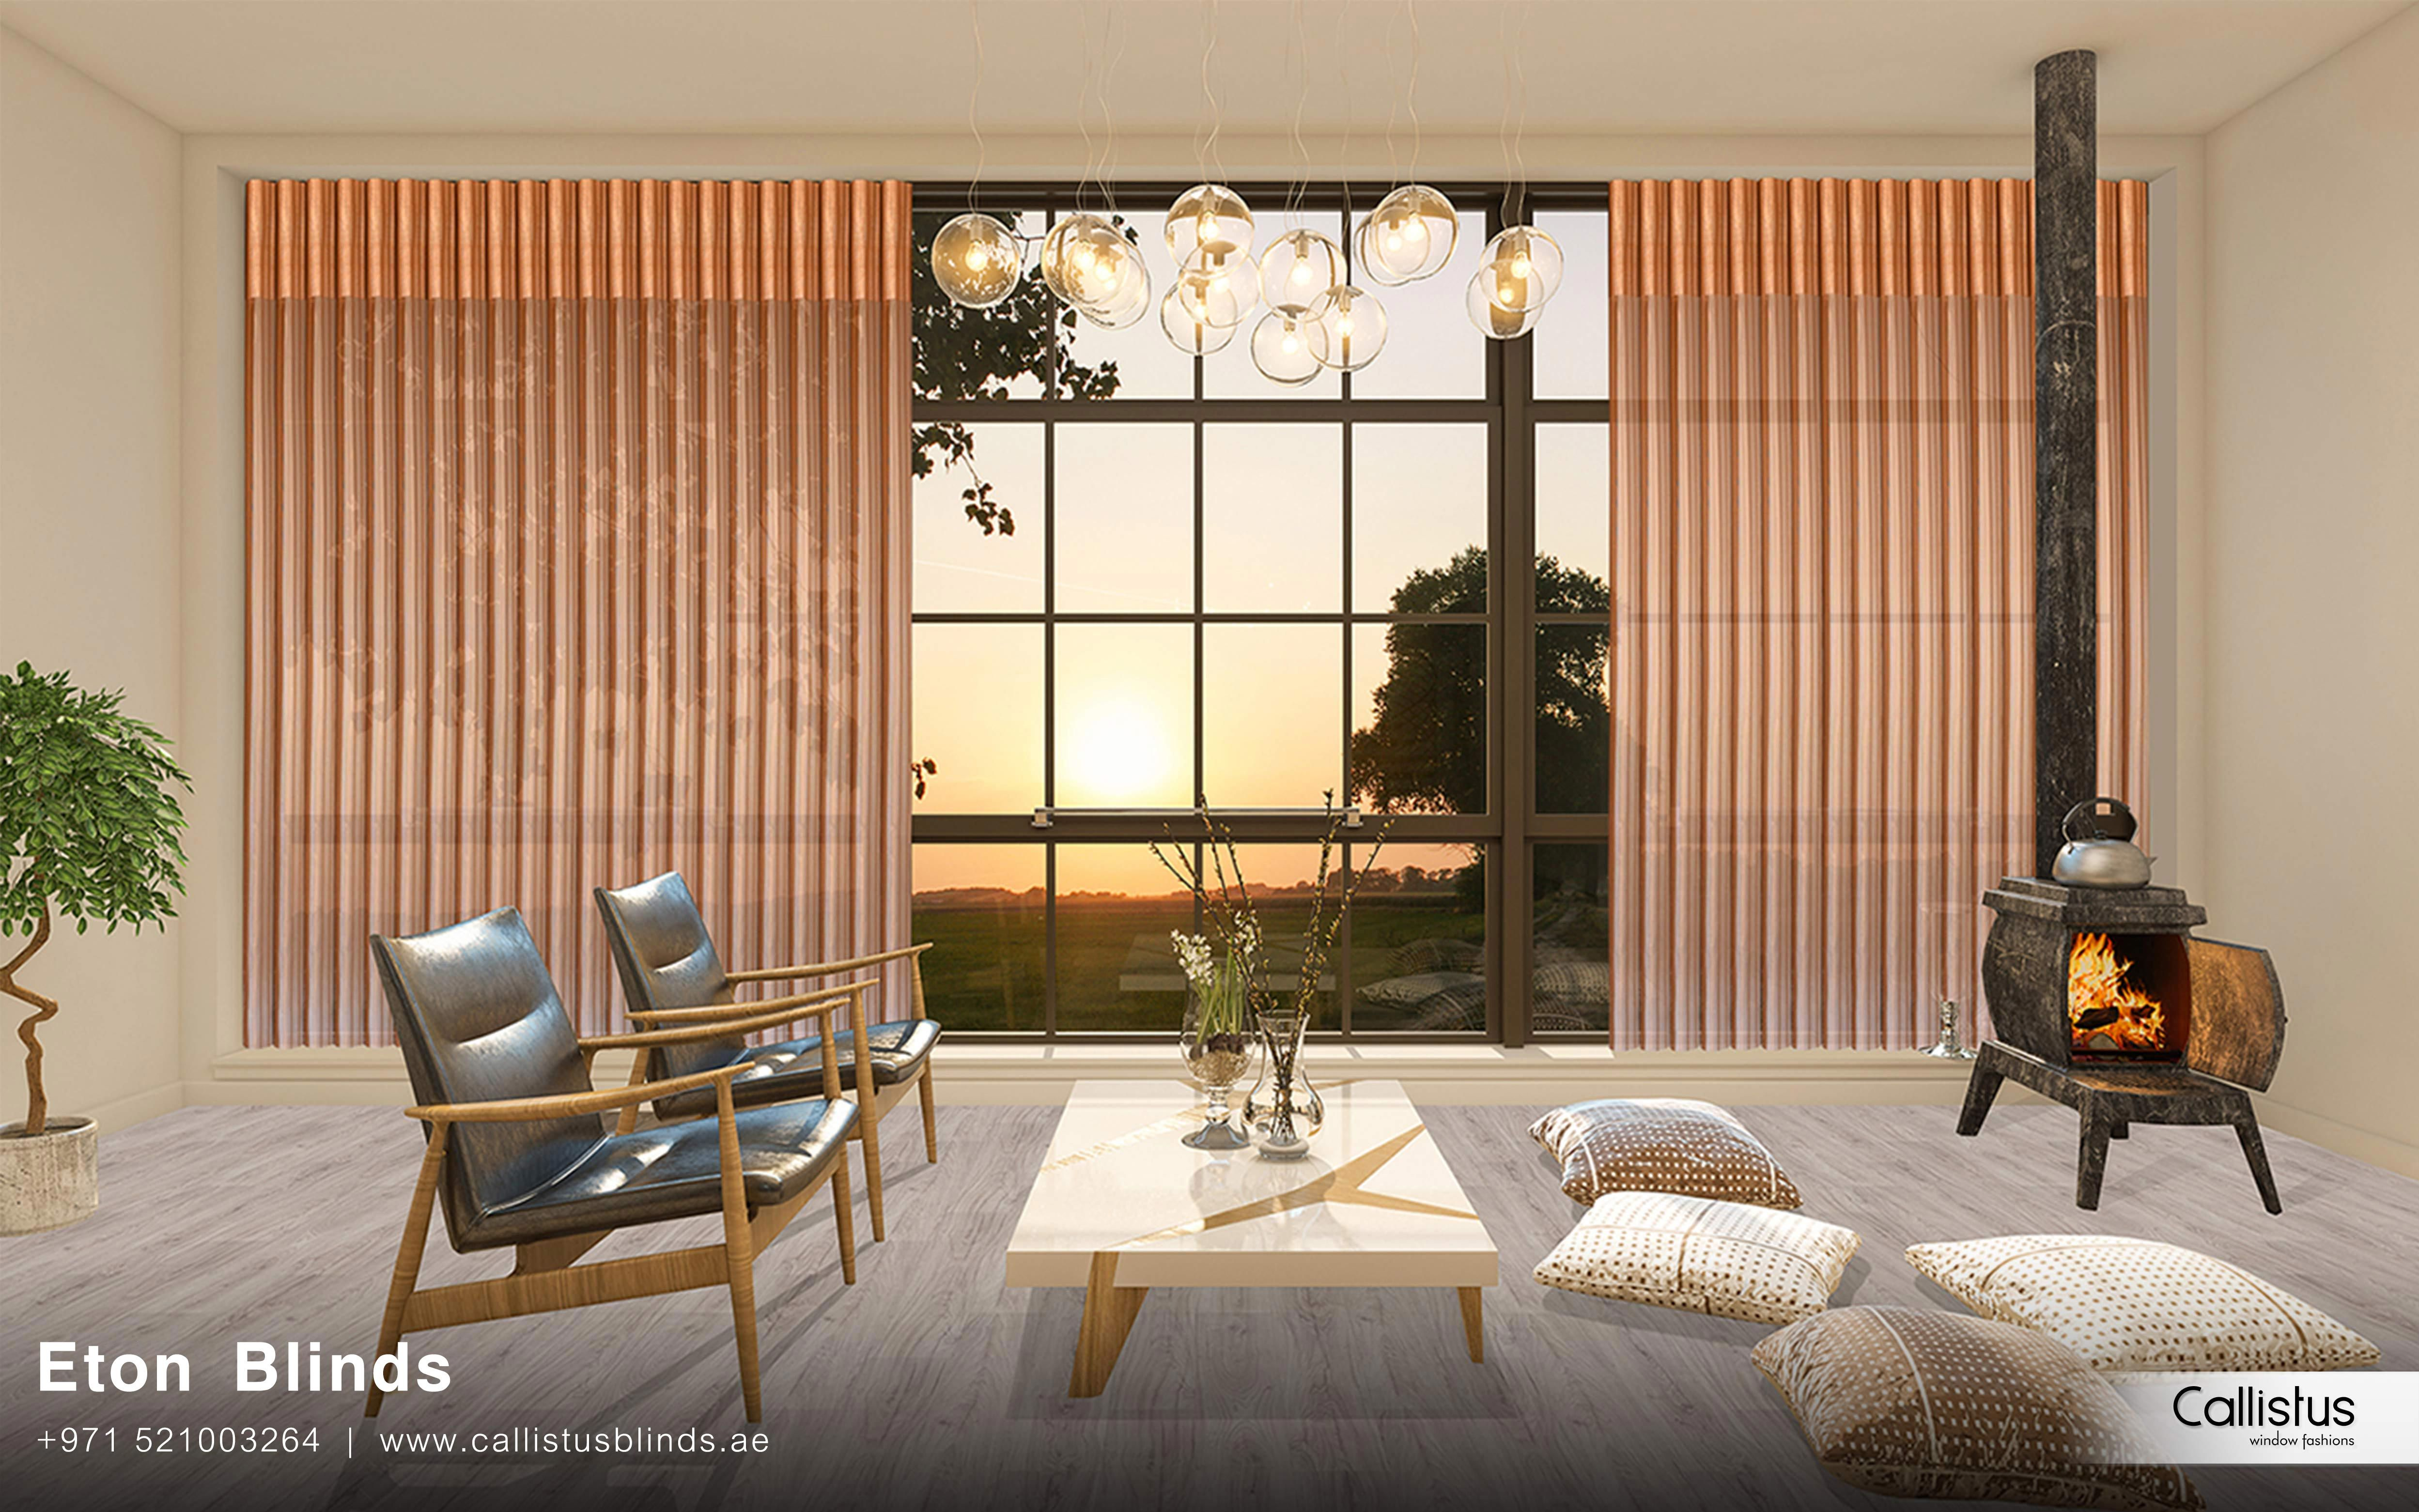 Callistus Eton Blinds Offer A Softly Filtered View Providing